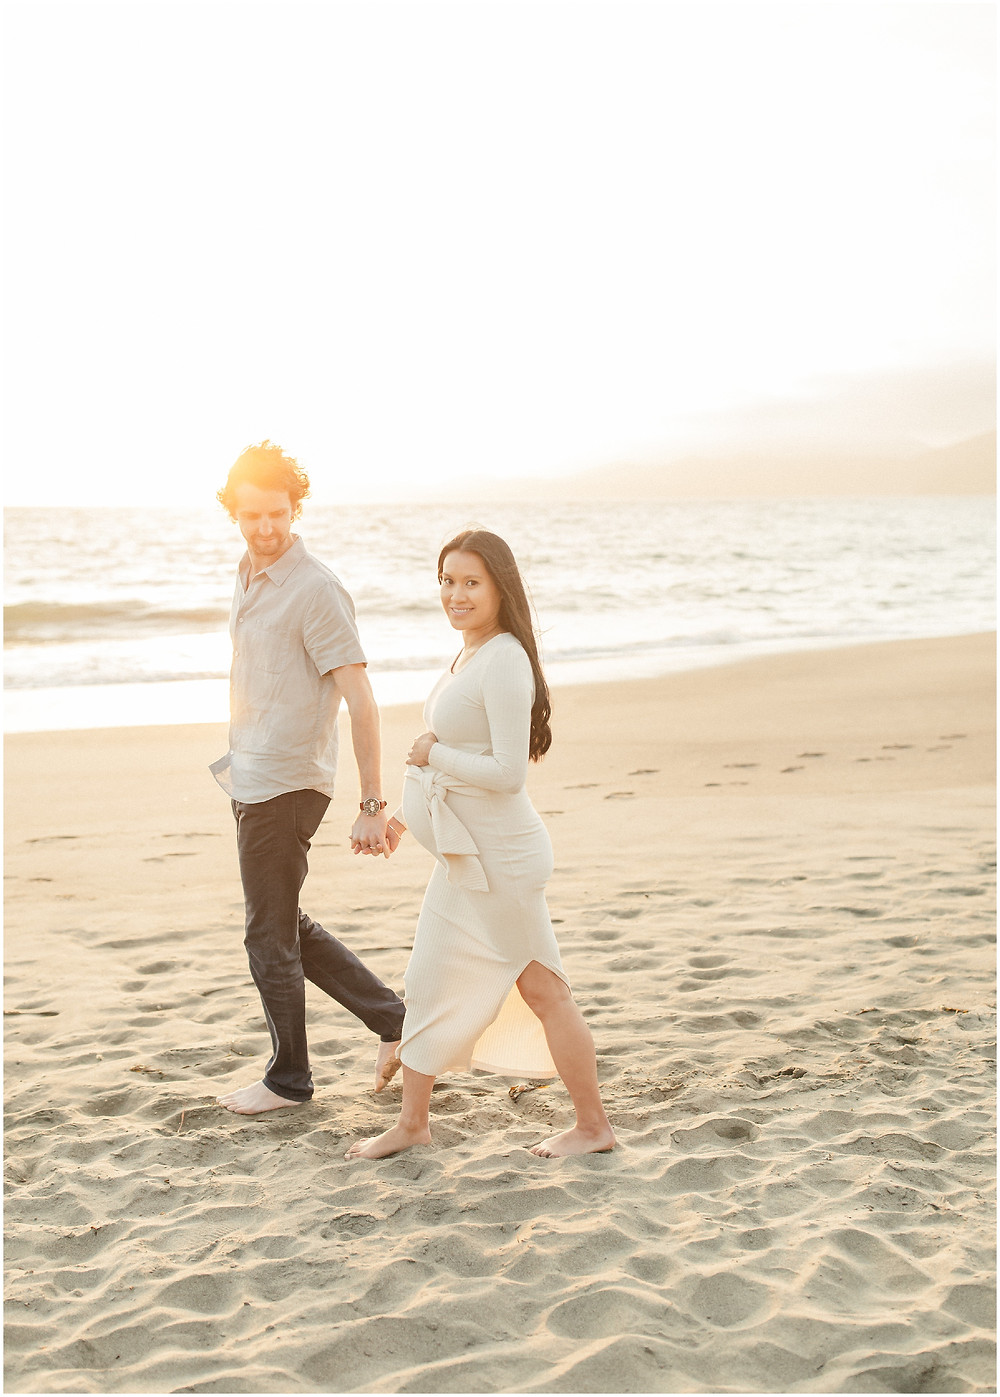 Coastal San Francisco Baker Beach fine art lifestyle maternity session by Marin Bay Area Photographer Torrey Fox  bright airy dreamy neutral pregnancy style